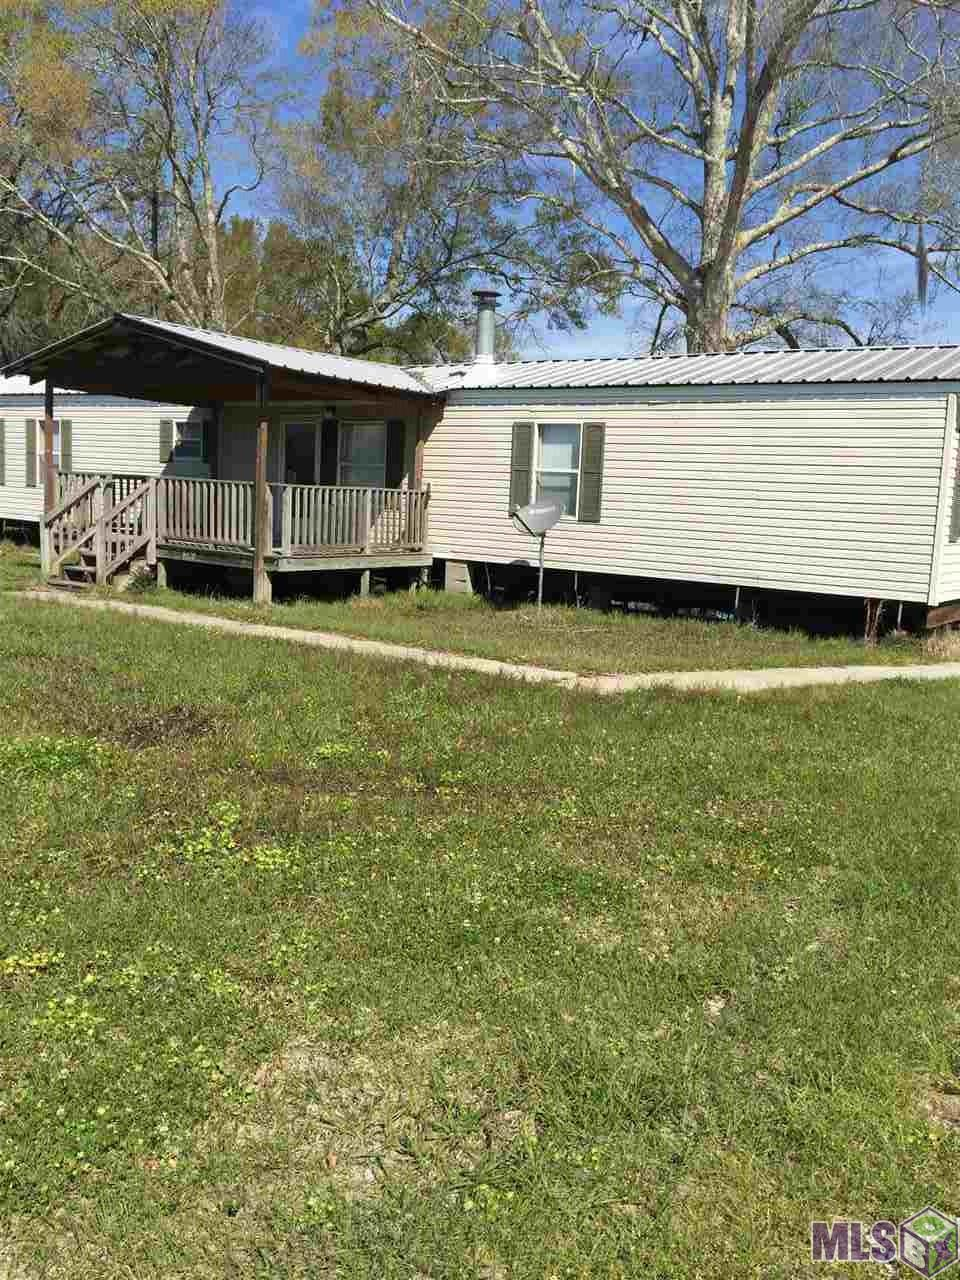 8820 ZACHARY-DEERFORD RD, Central, LA 70791